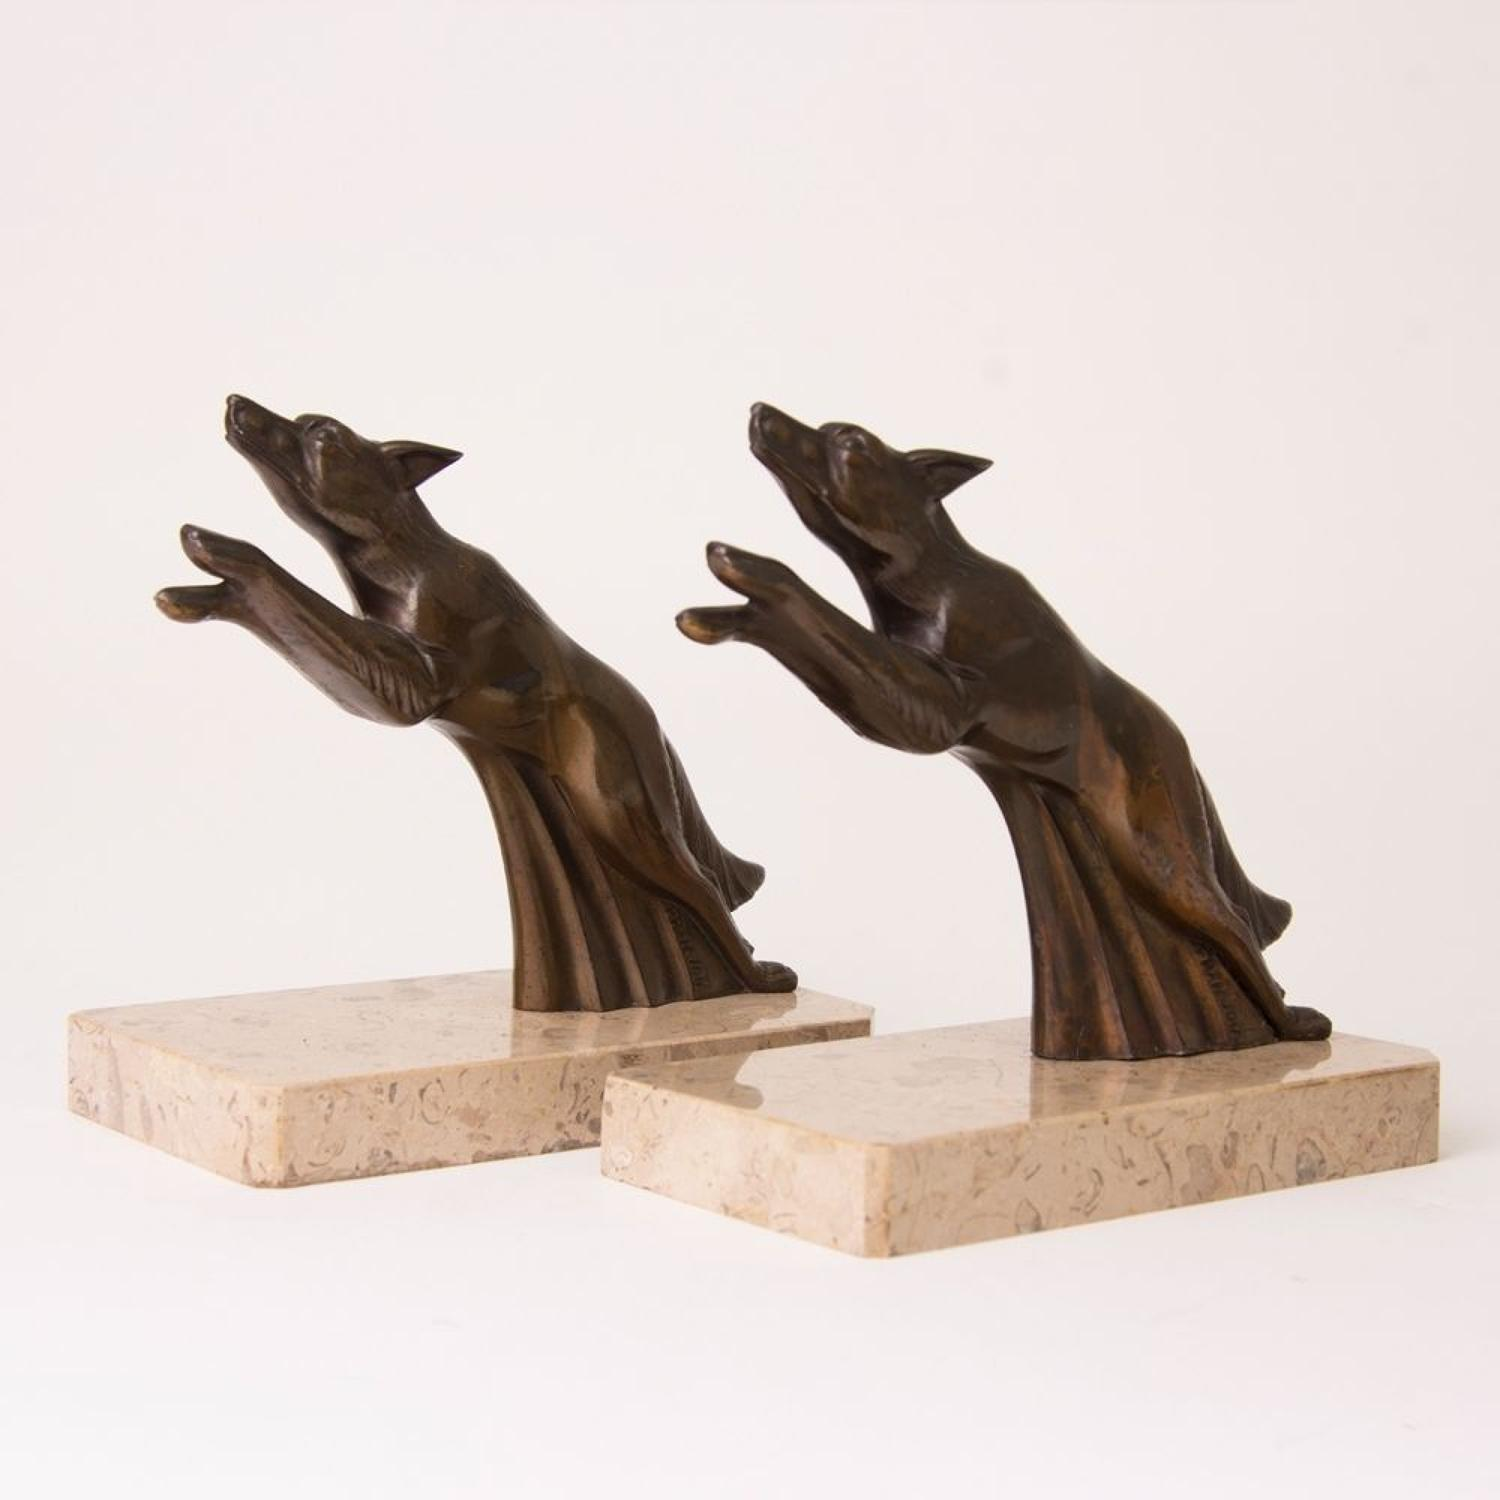 Pair of 1920's Art Deco Bookends